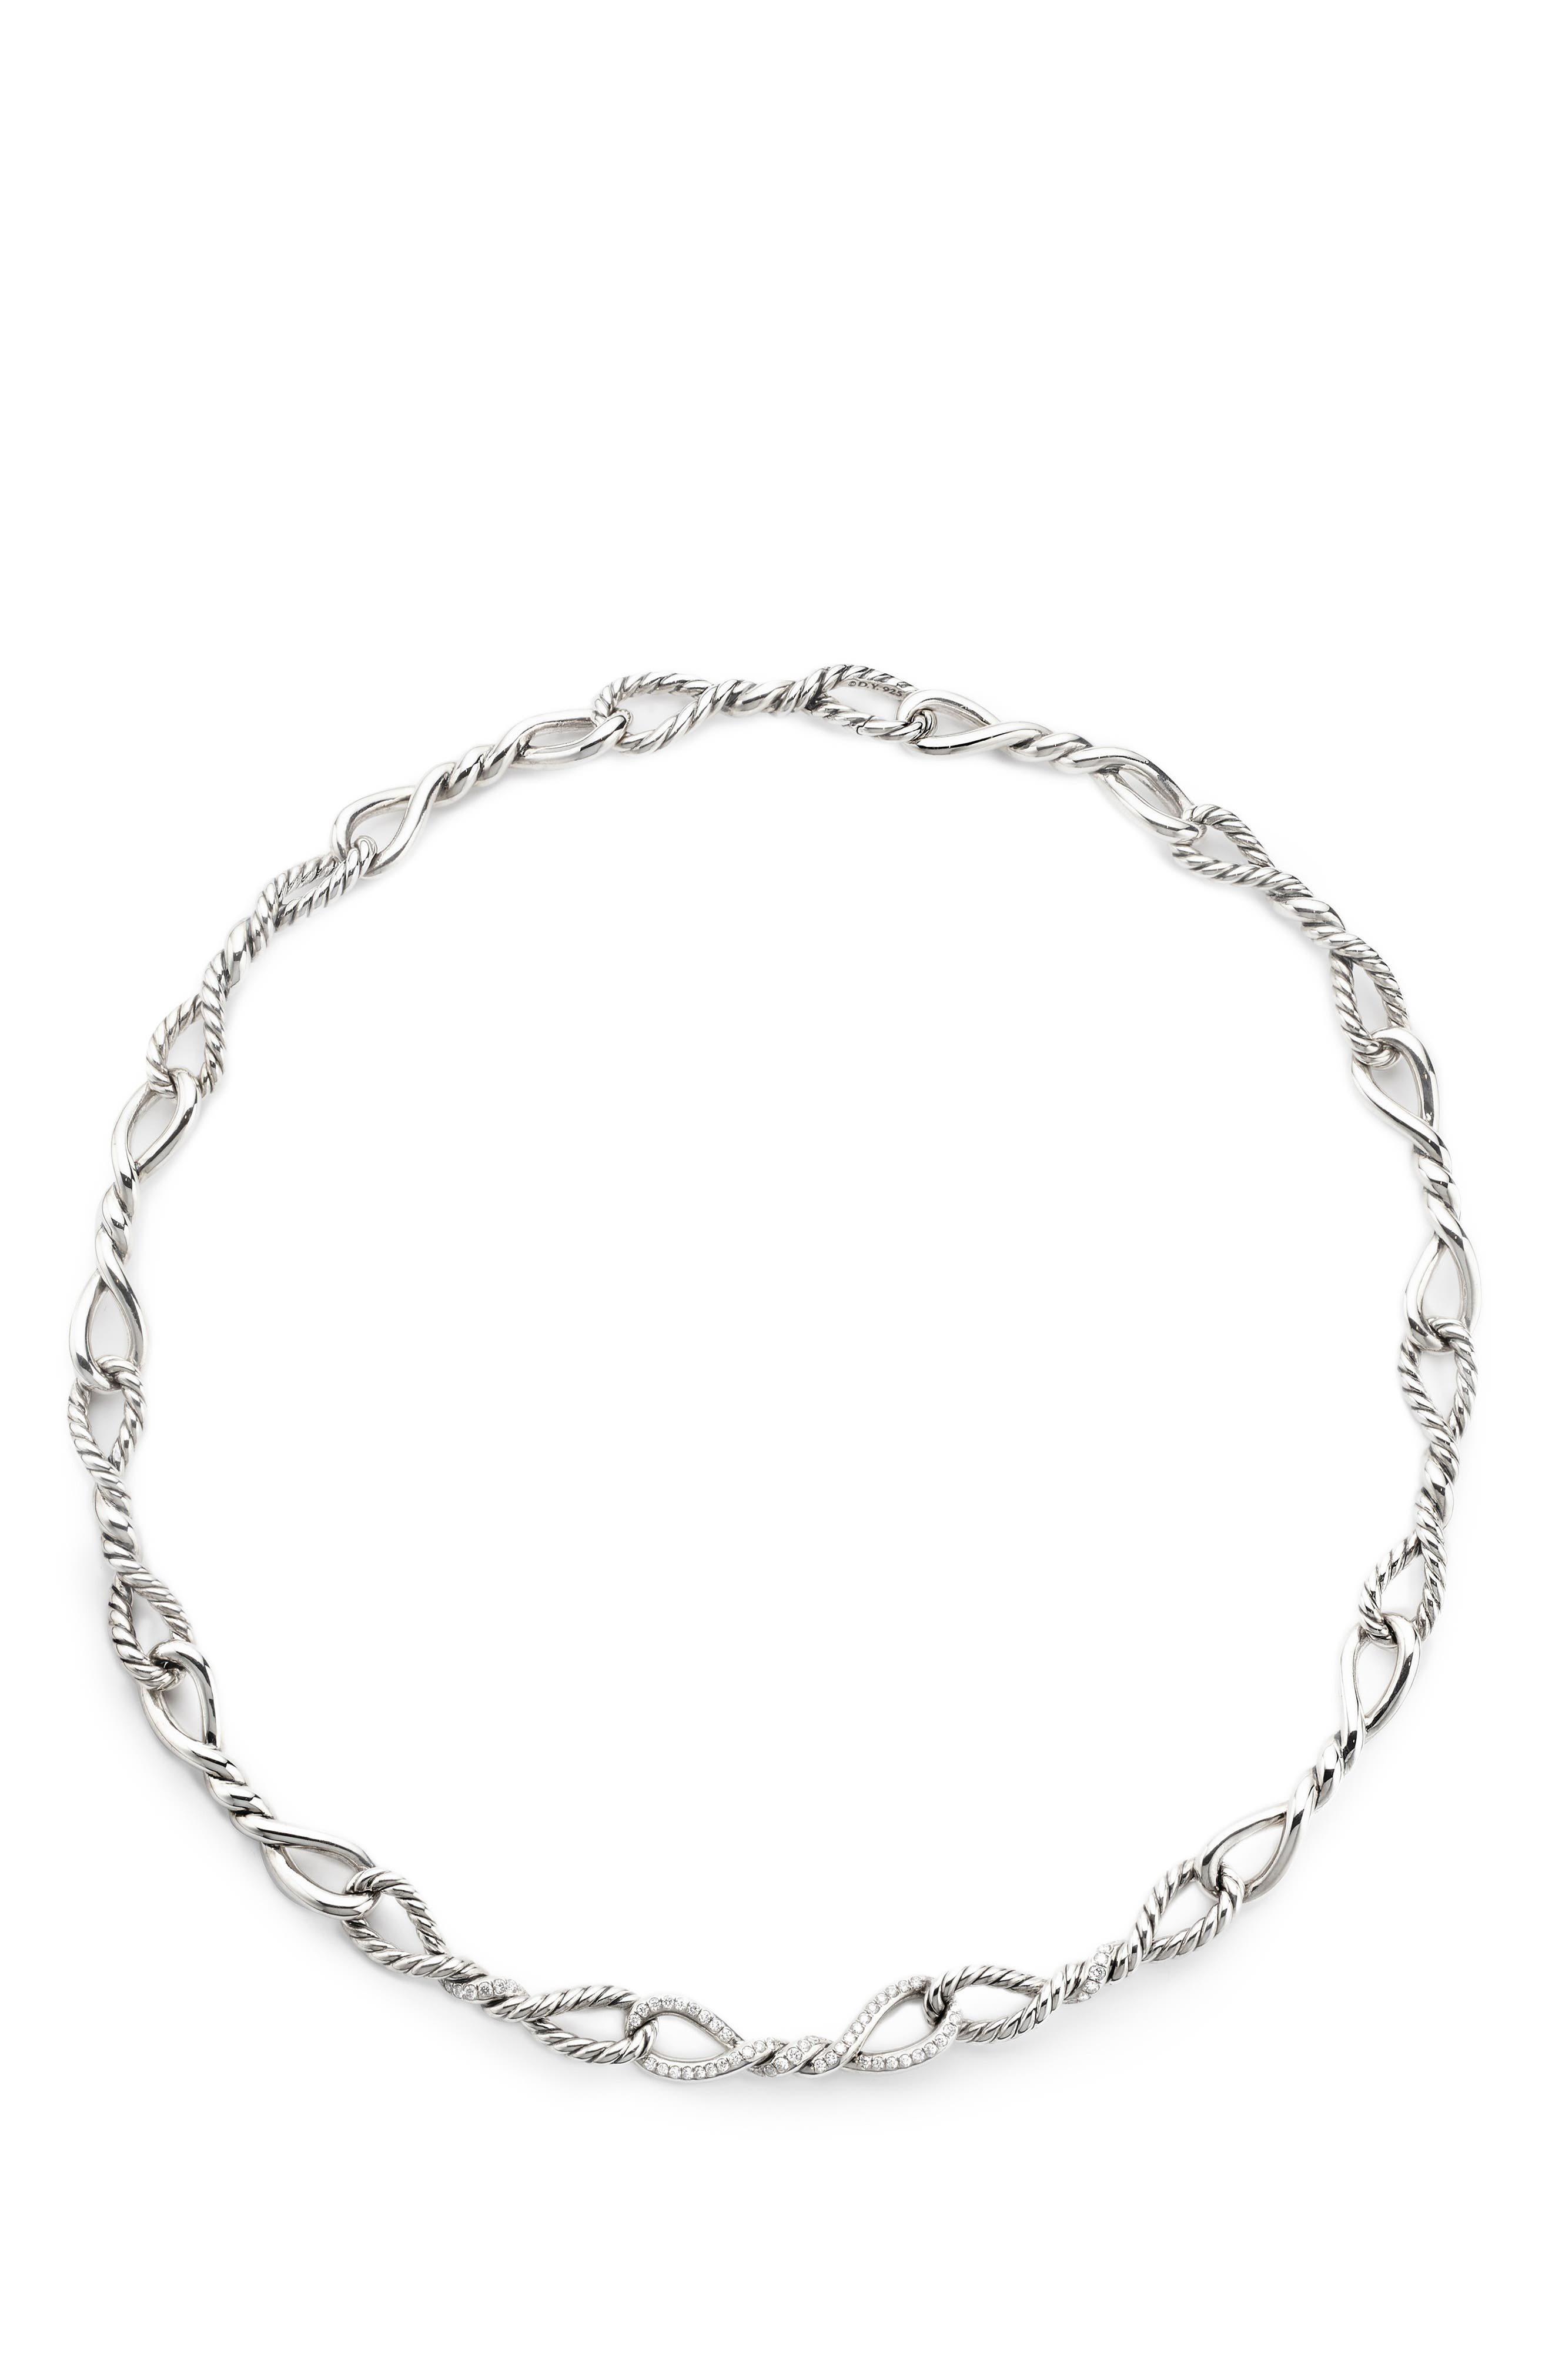 Continuance Short Linked Necklace with Diamonds,                             Main thumbnail 1, color,                             SILVER/ DIAMOND